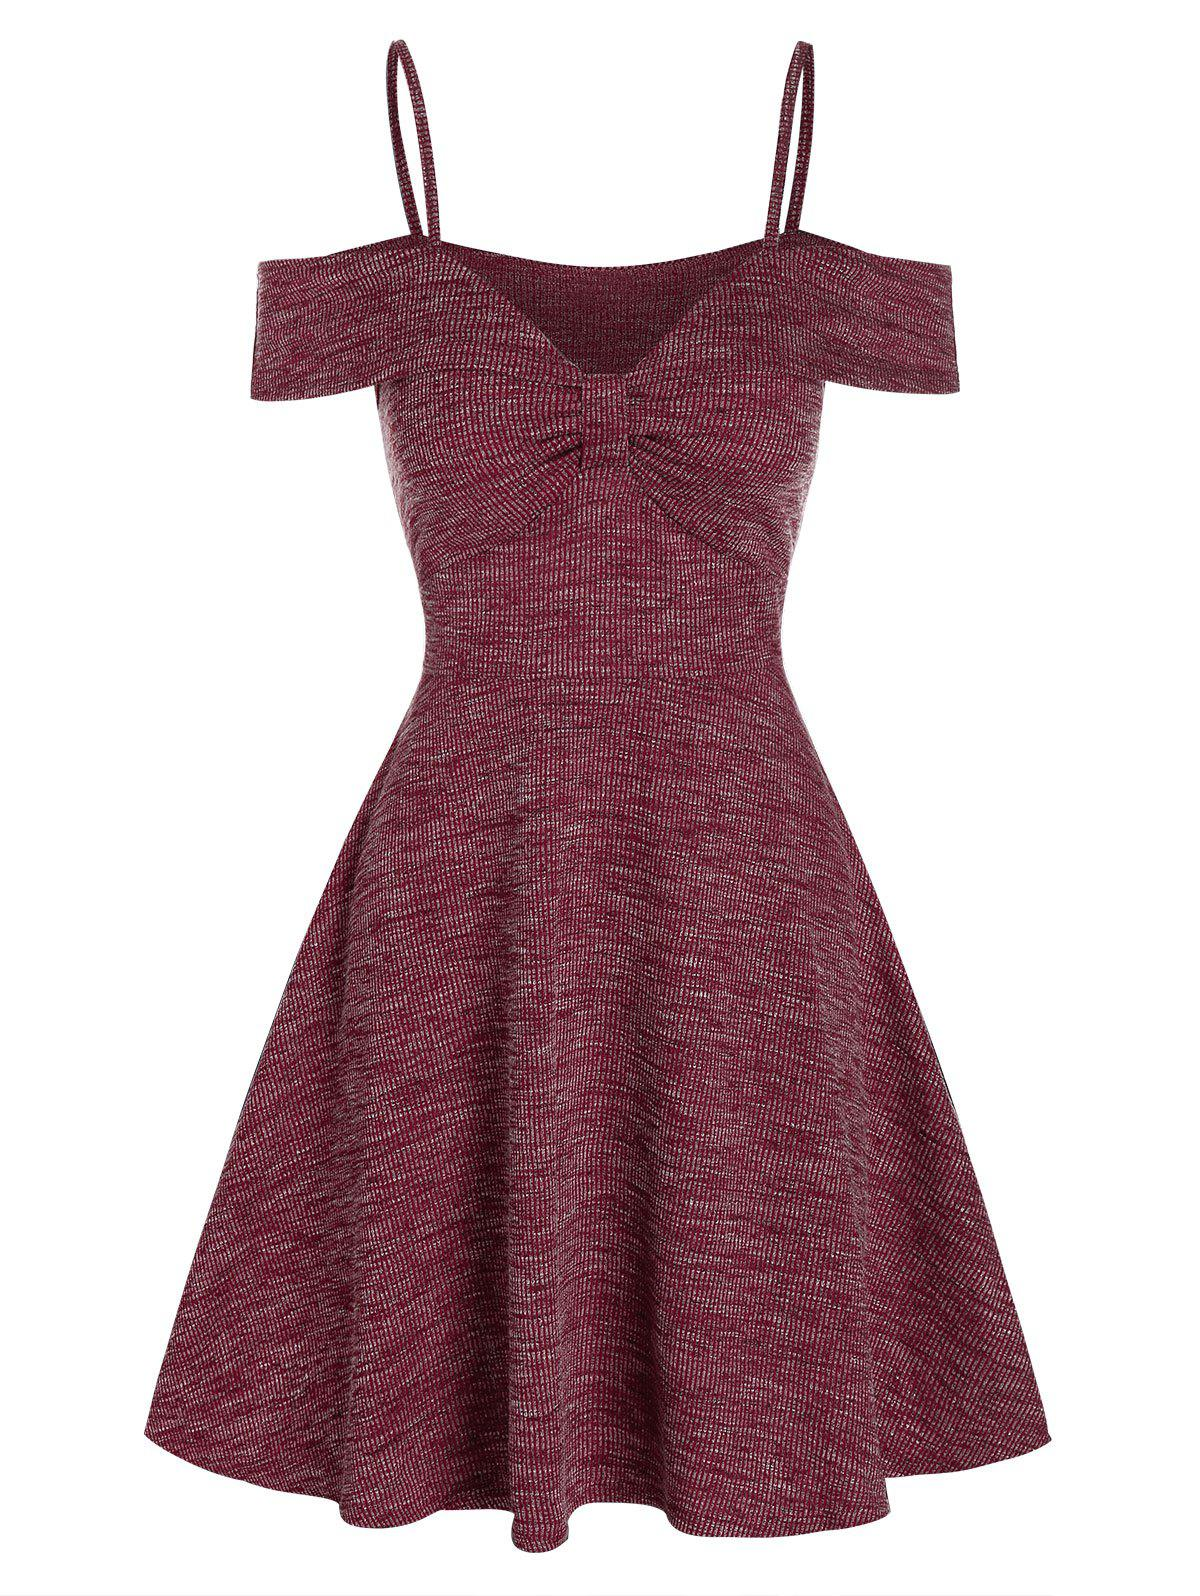 Cold Shoulder Textured Mini A Line Dress - RED WINE M